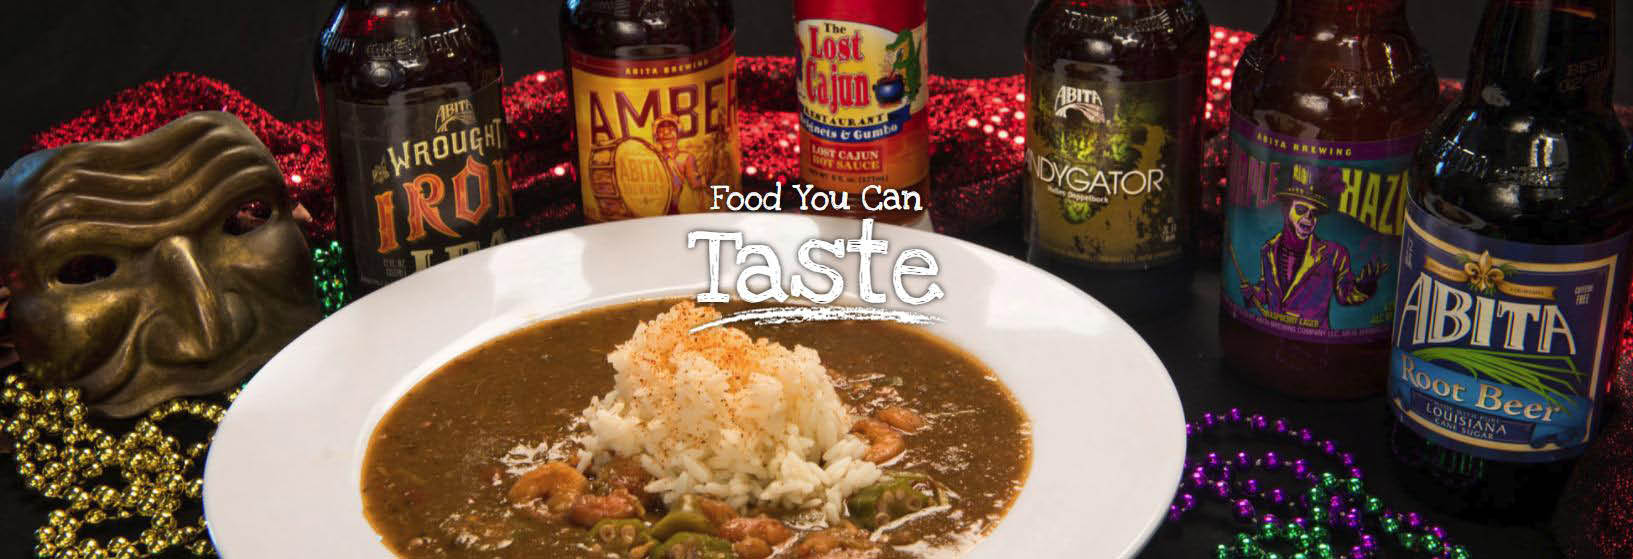 The Lost Cajun Restaurant Banner Image